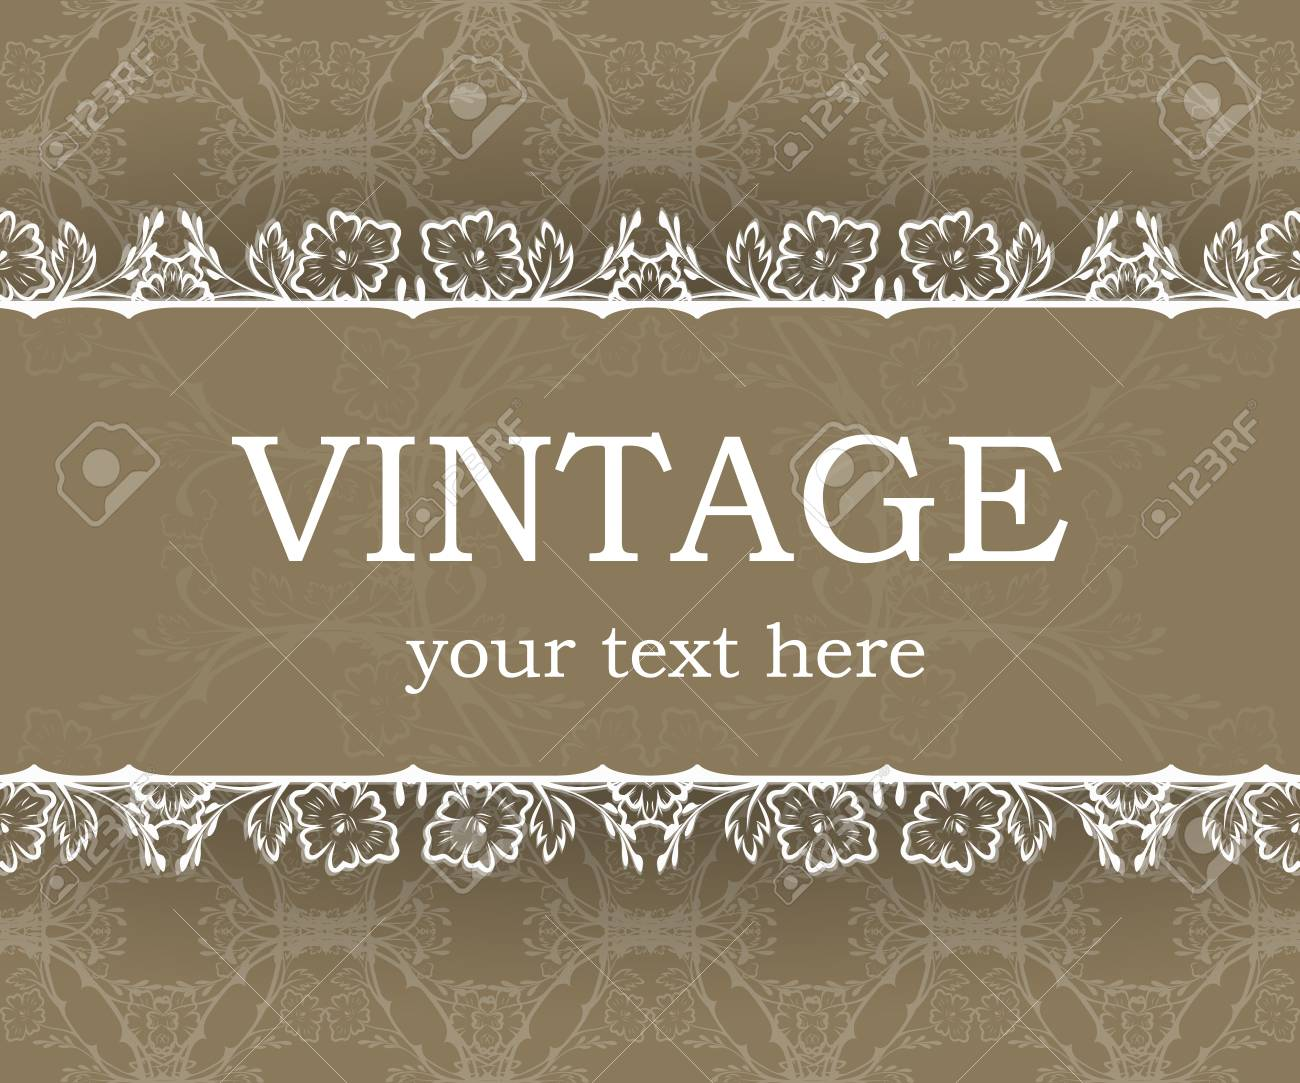 Vintage Background With Decorative Frame Elegant Design Element